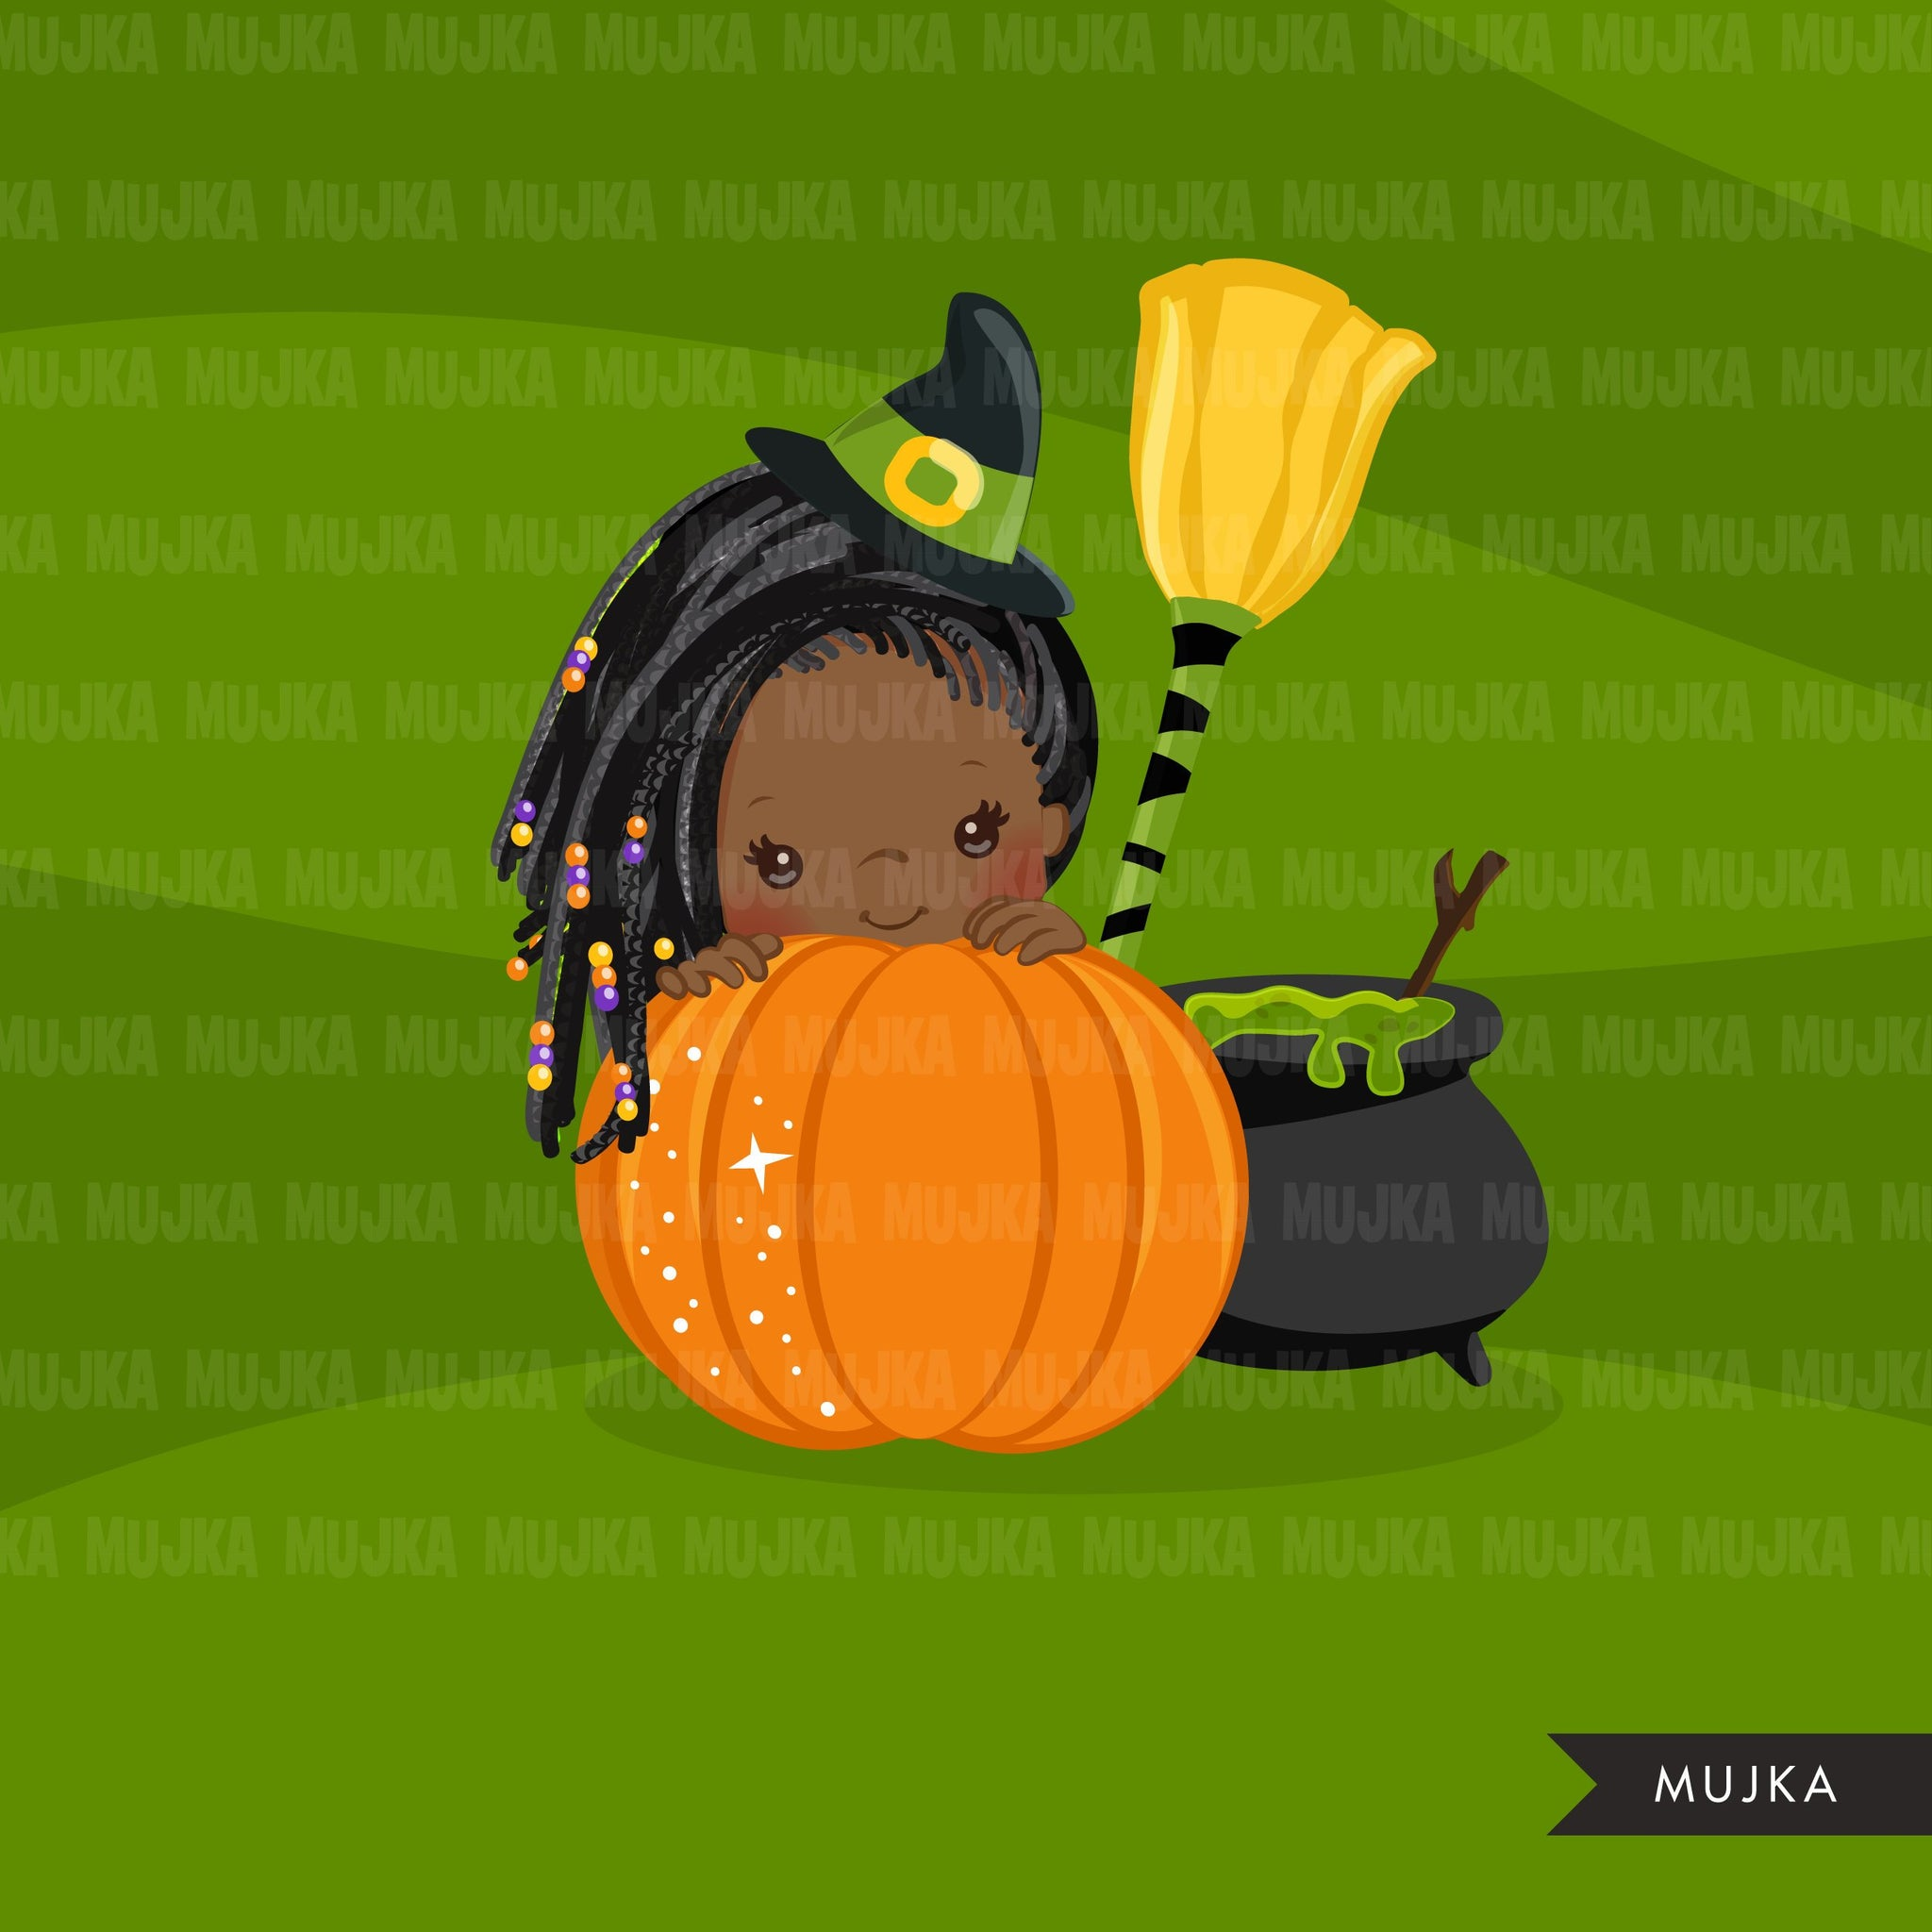 Halloween peek a boo peeking girls clipart.  Afro black Cute kids peeking on pumpkin